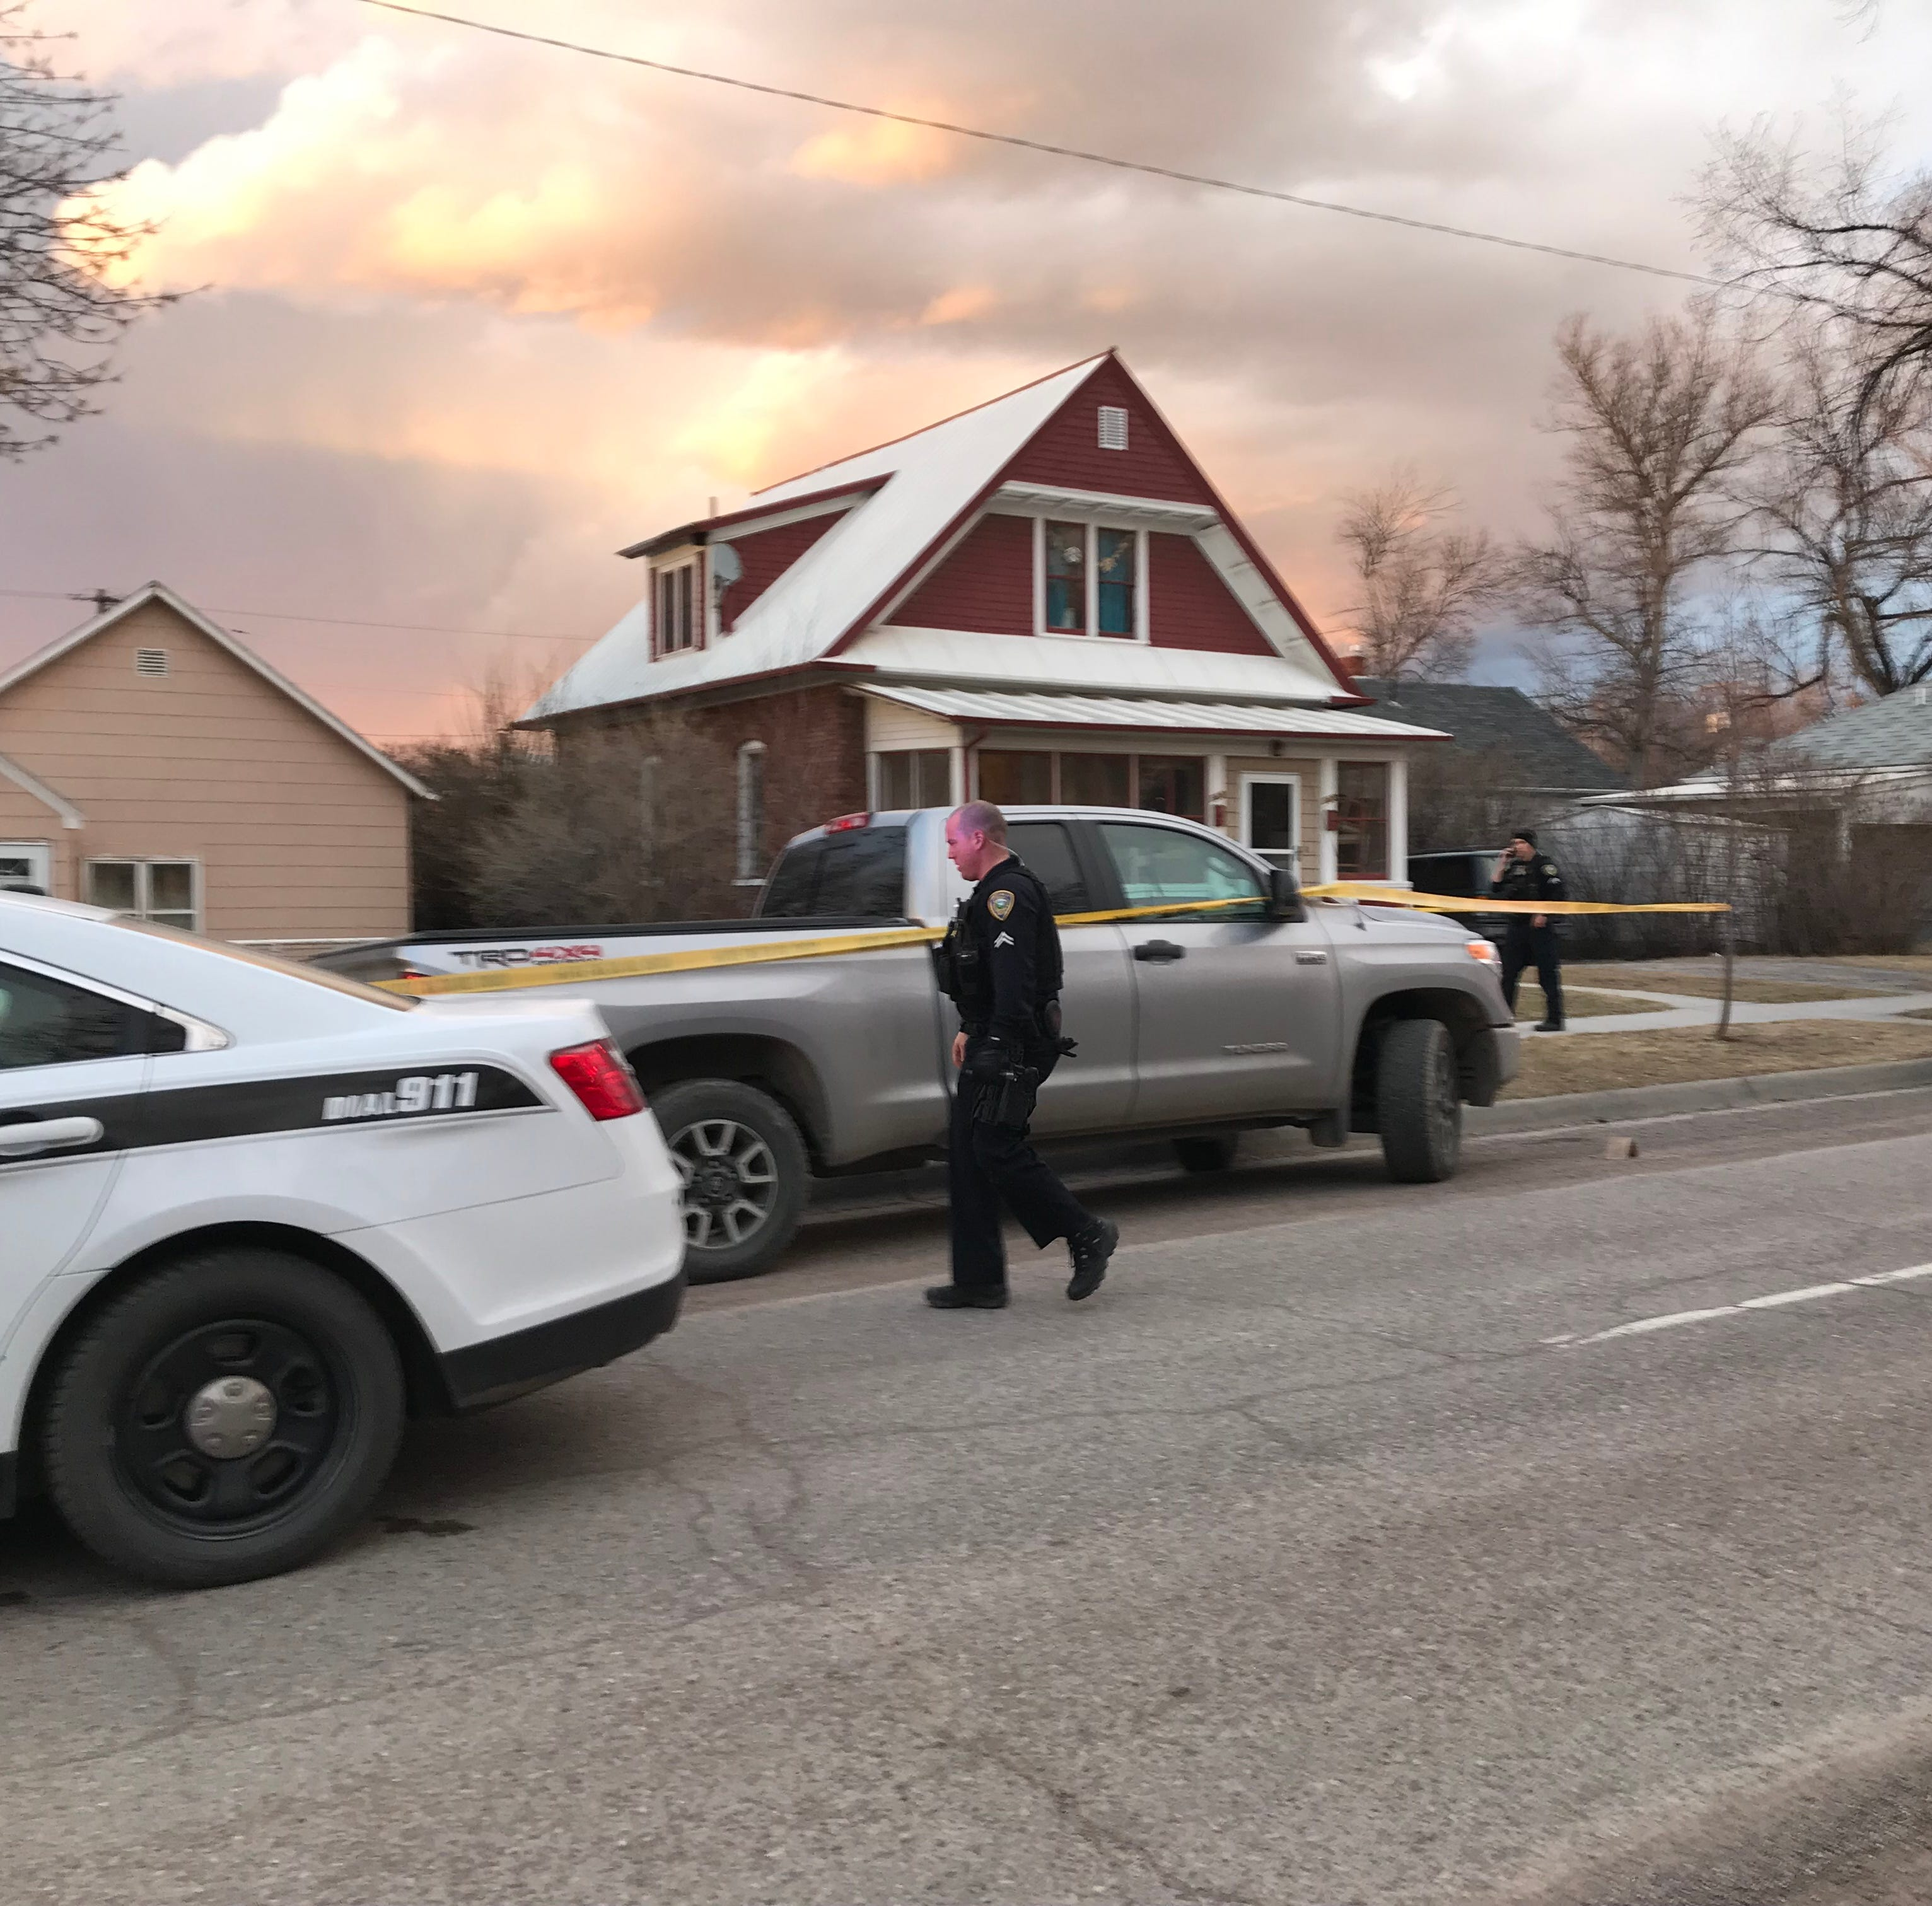 Police respond to major incident on 2nd Ave. S.